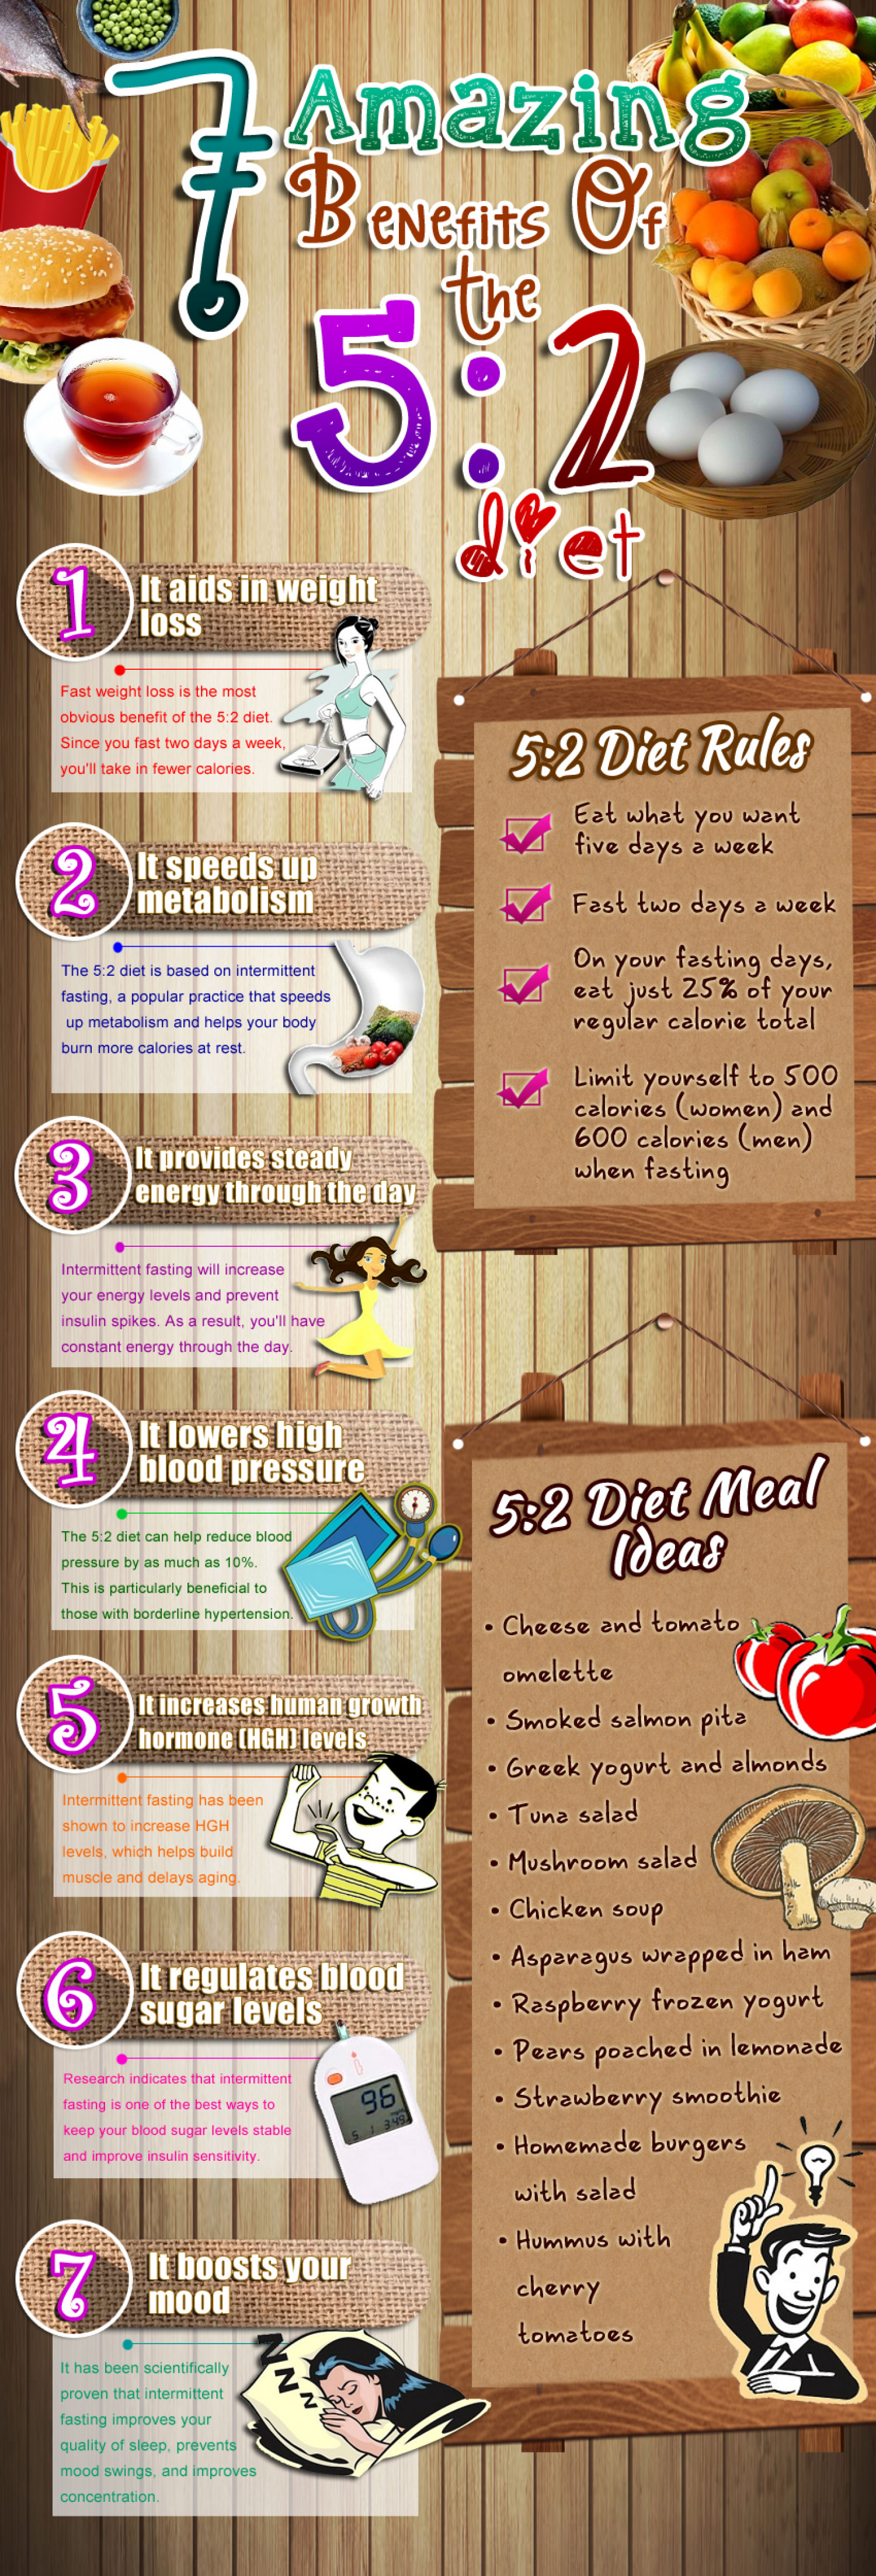 7 Amazing Benefits of the 5:2 Diet Infographic